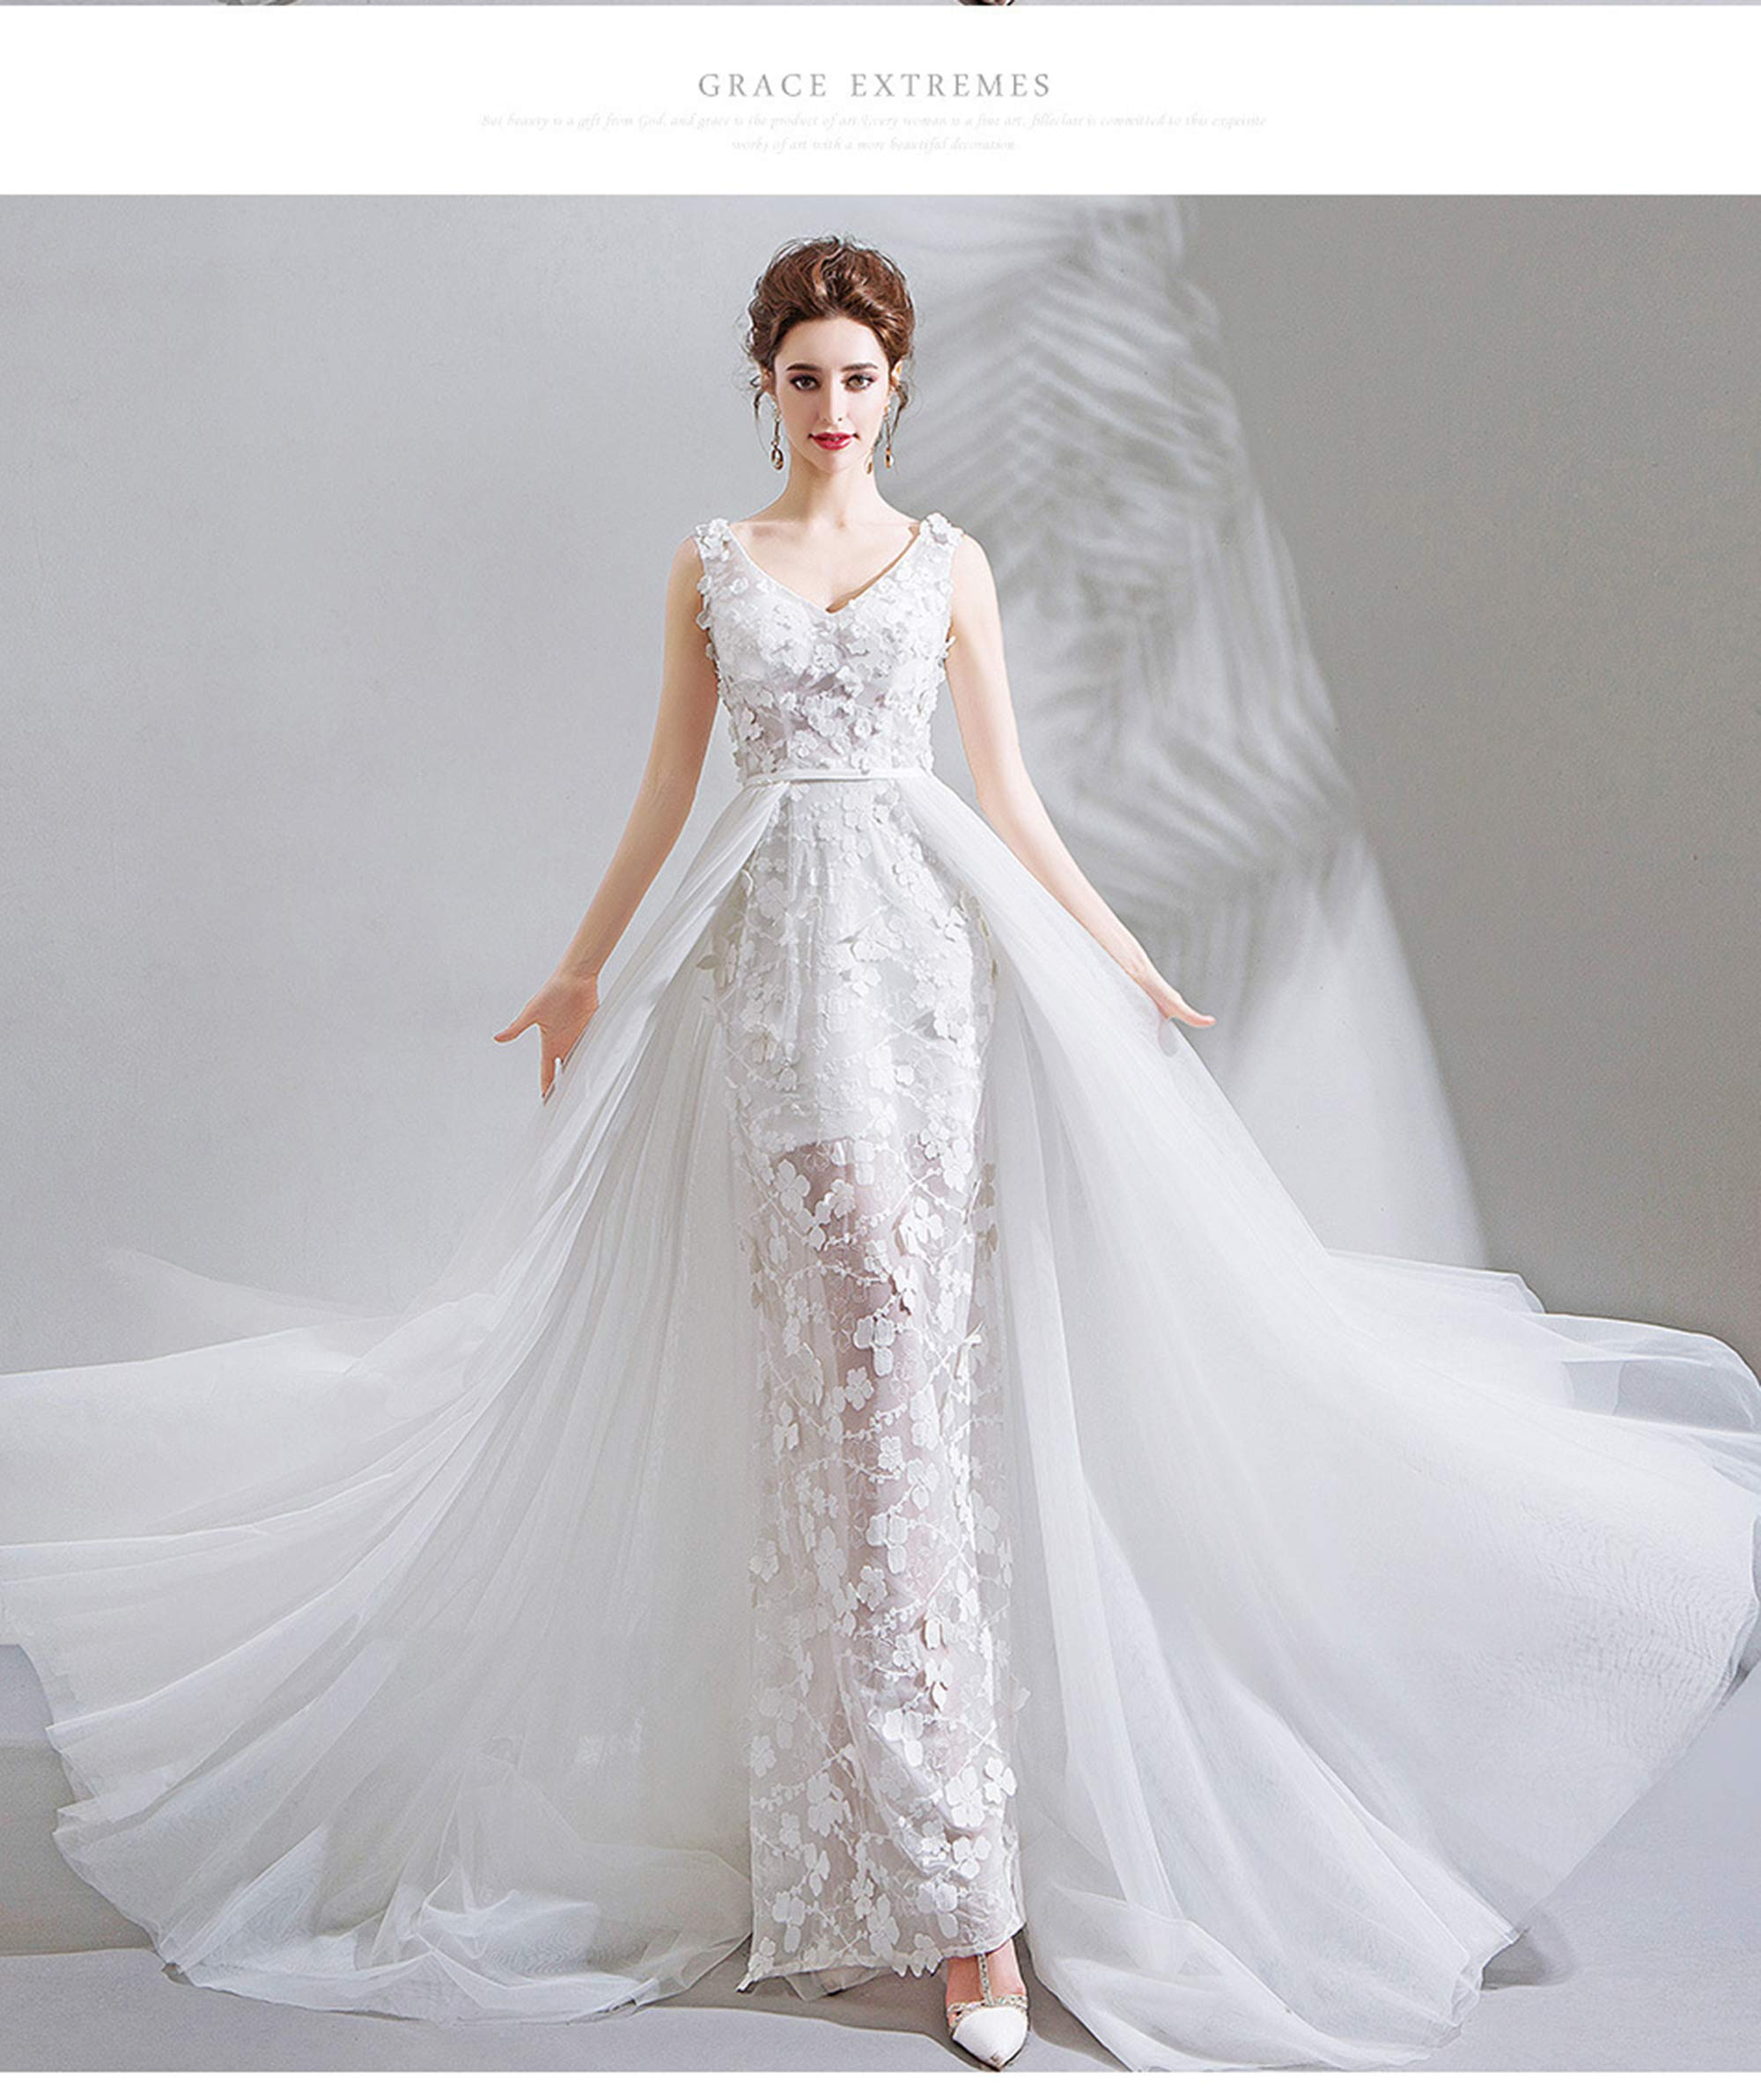 NOMSOCR Women's Lace V Neck Sleeveless Wedding Dresses Mermaid Bridal Gown (M, White) by NOMSOCR (Image #7)